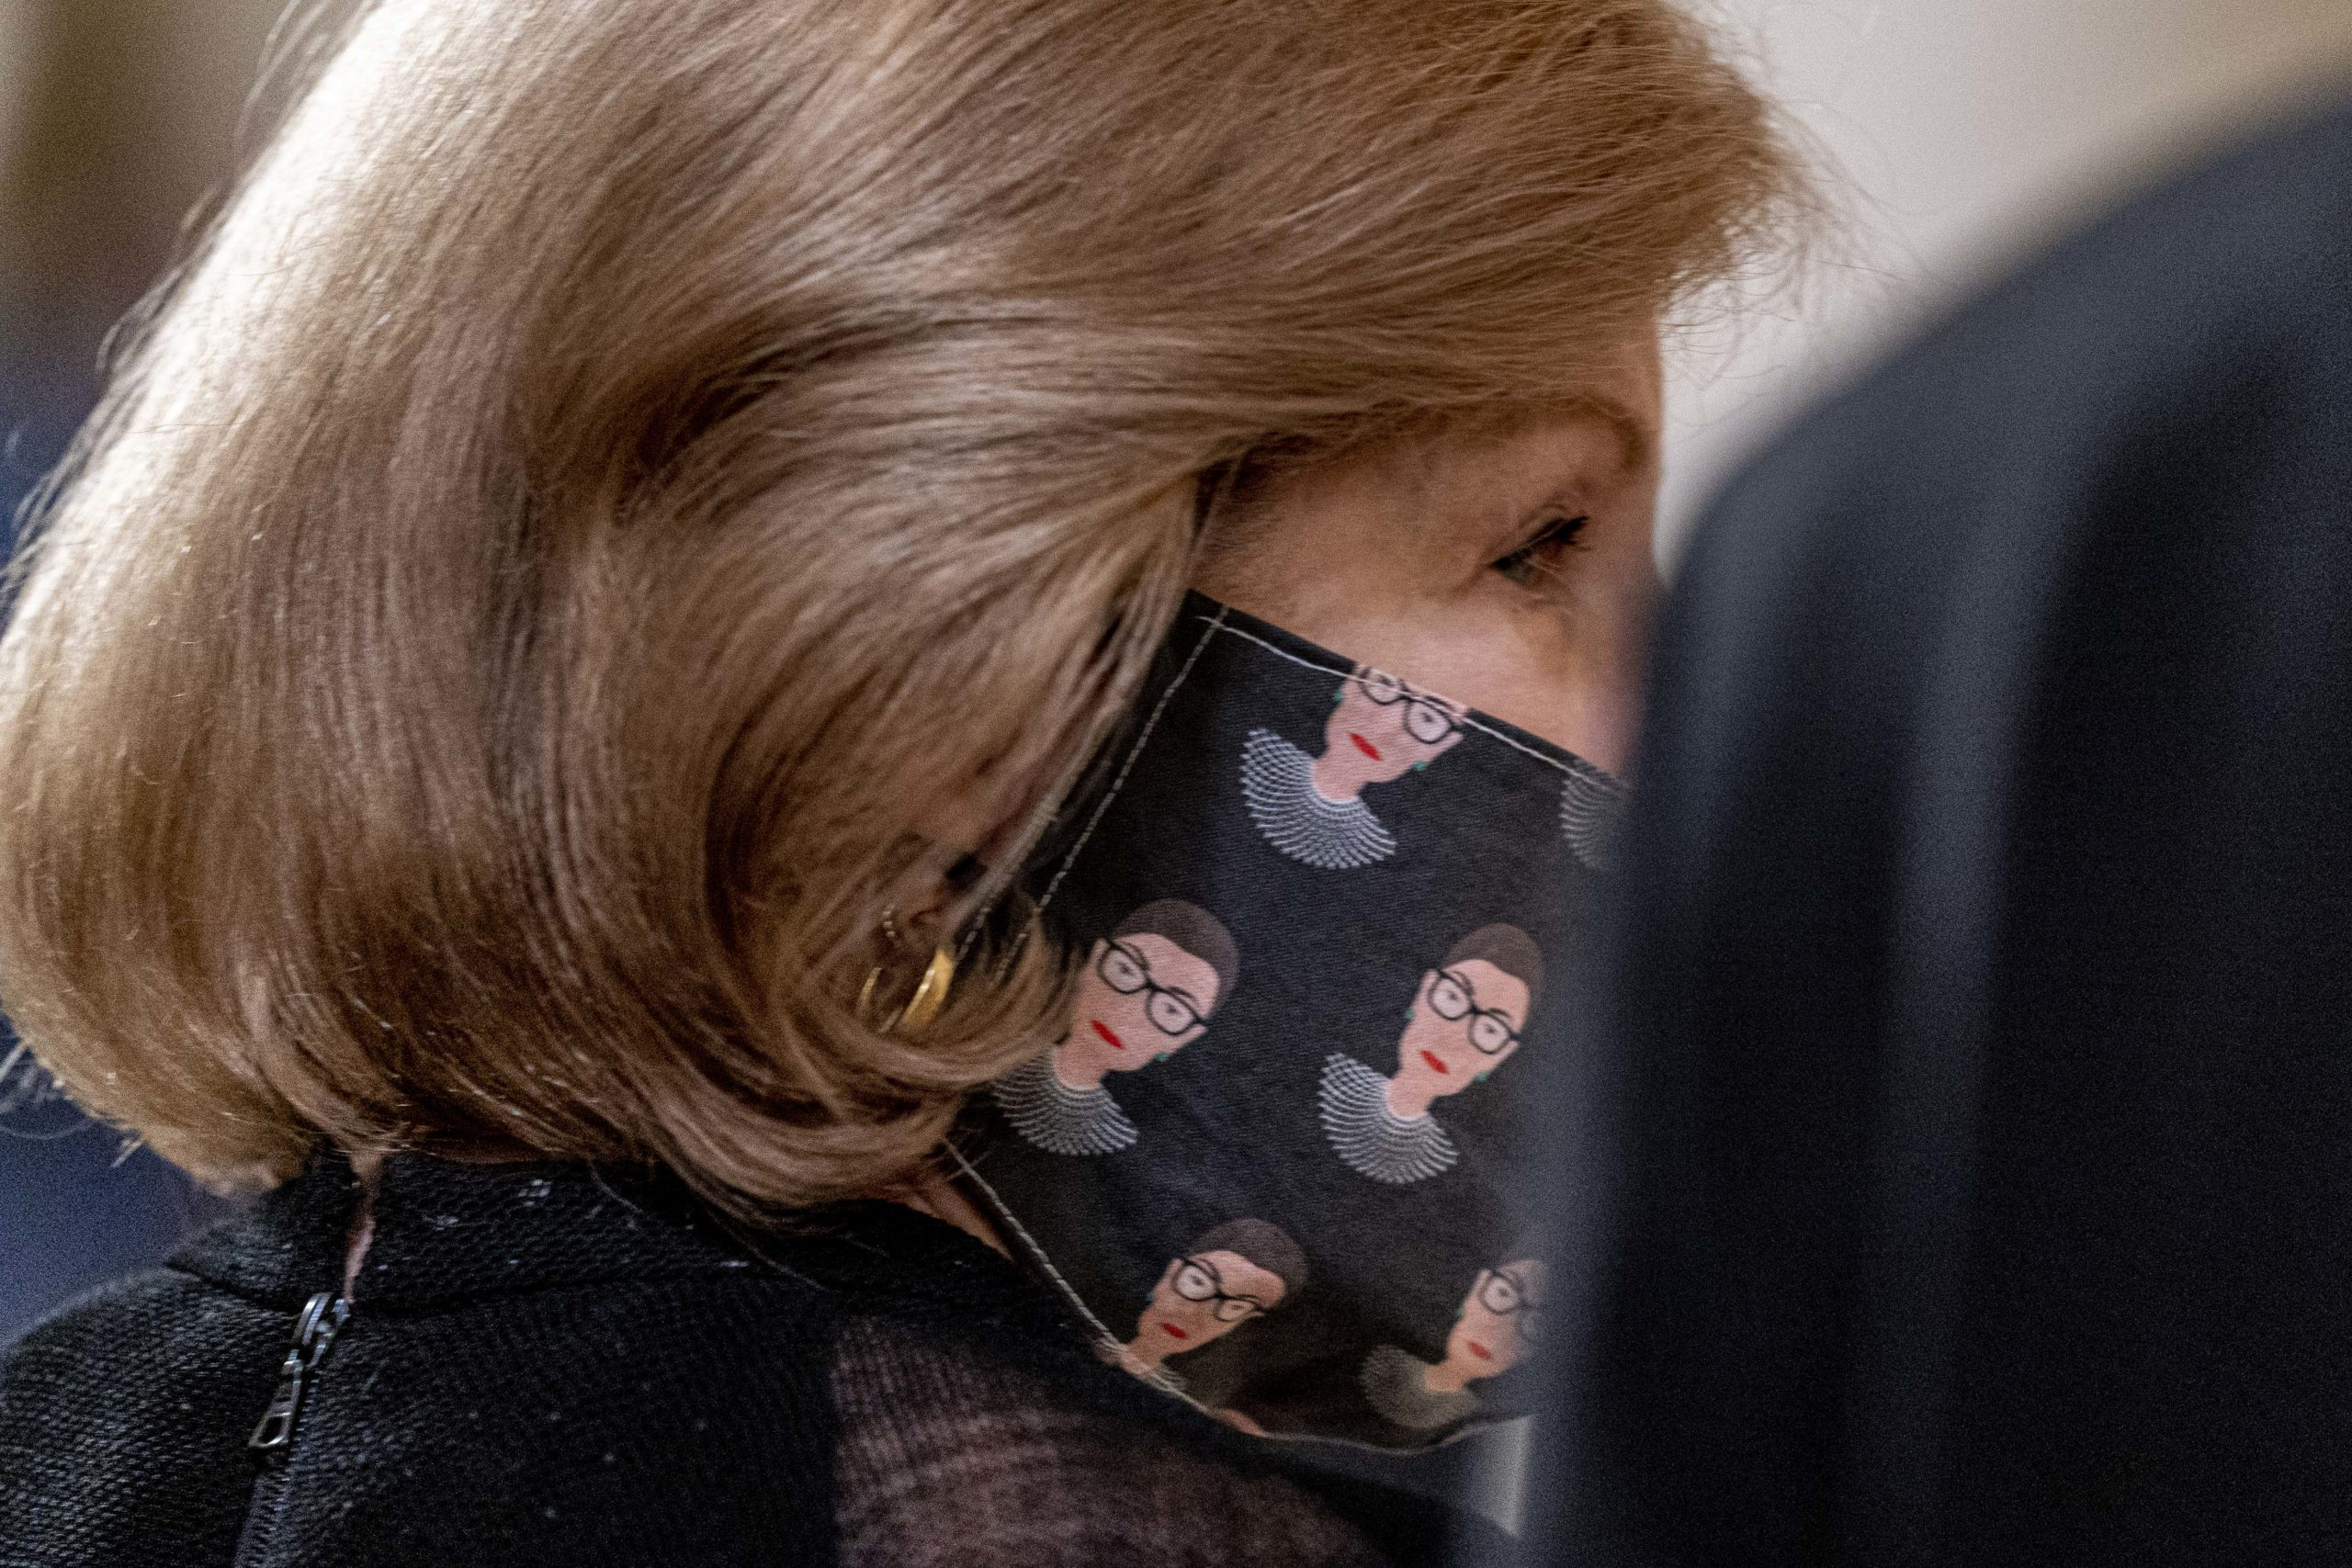 NPR Supreme Court reporter Nina Totenberg wears a face mask with depictions of Justice Ruth Bader Ginsburg on it during a private ceremony for Justice Ginsburg, on September 23, 2020 in Washington, DC. Ginsburg, who was appointed by former U.S. President Bill Clinton served on the high court from 1993, until her death on September 18, 2020. (Andrew Harnik-Pool/Getty Images)